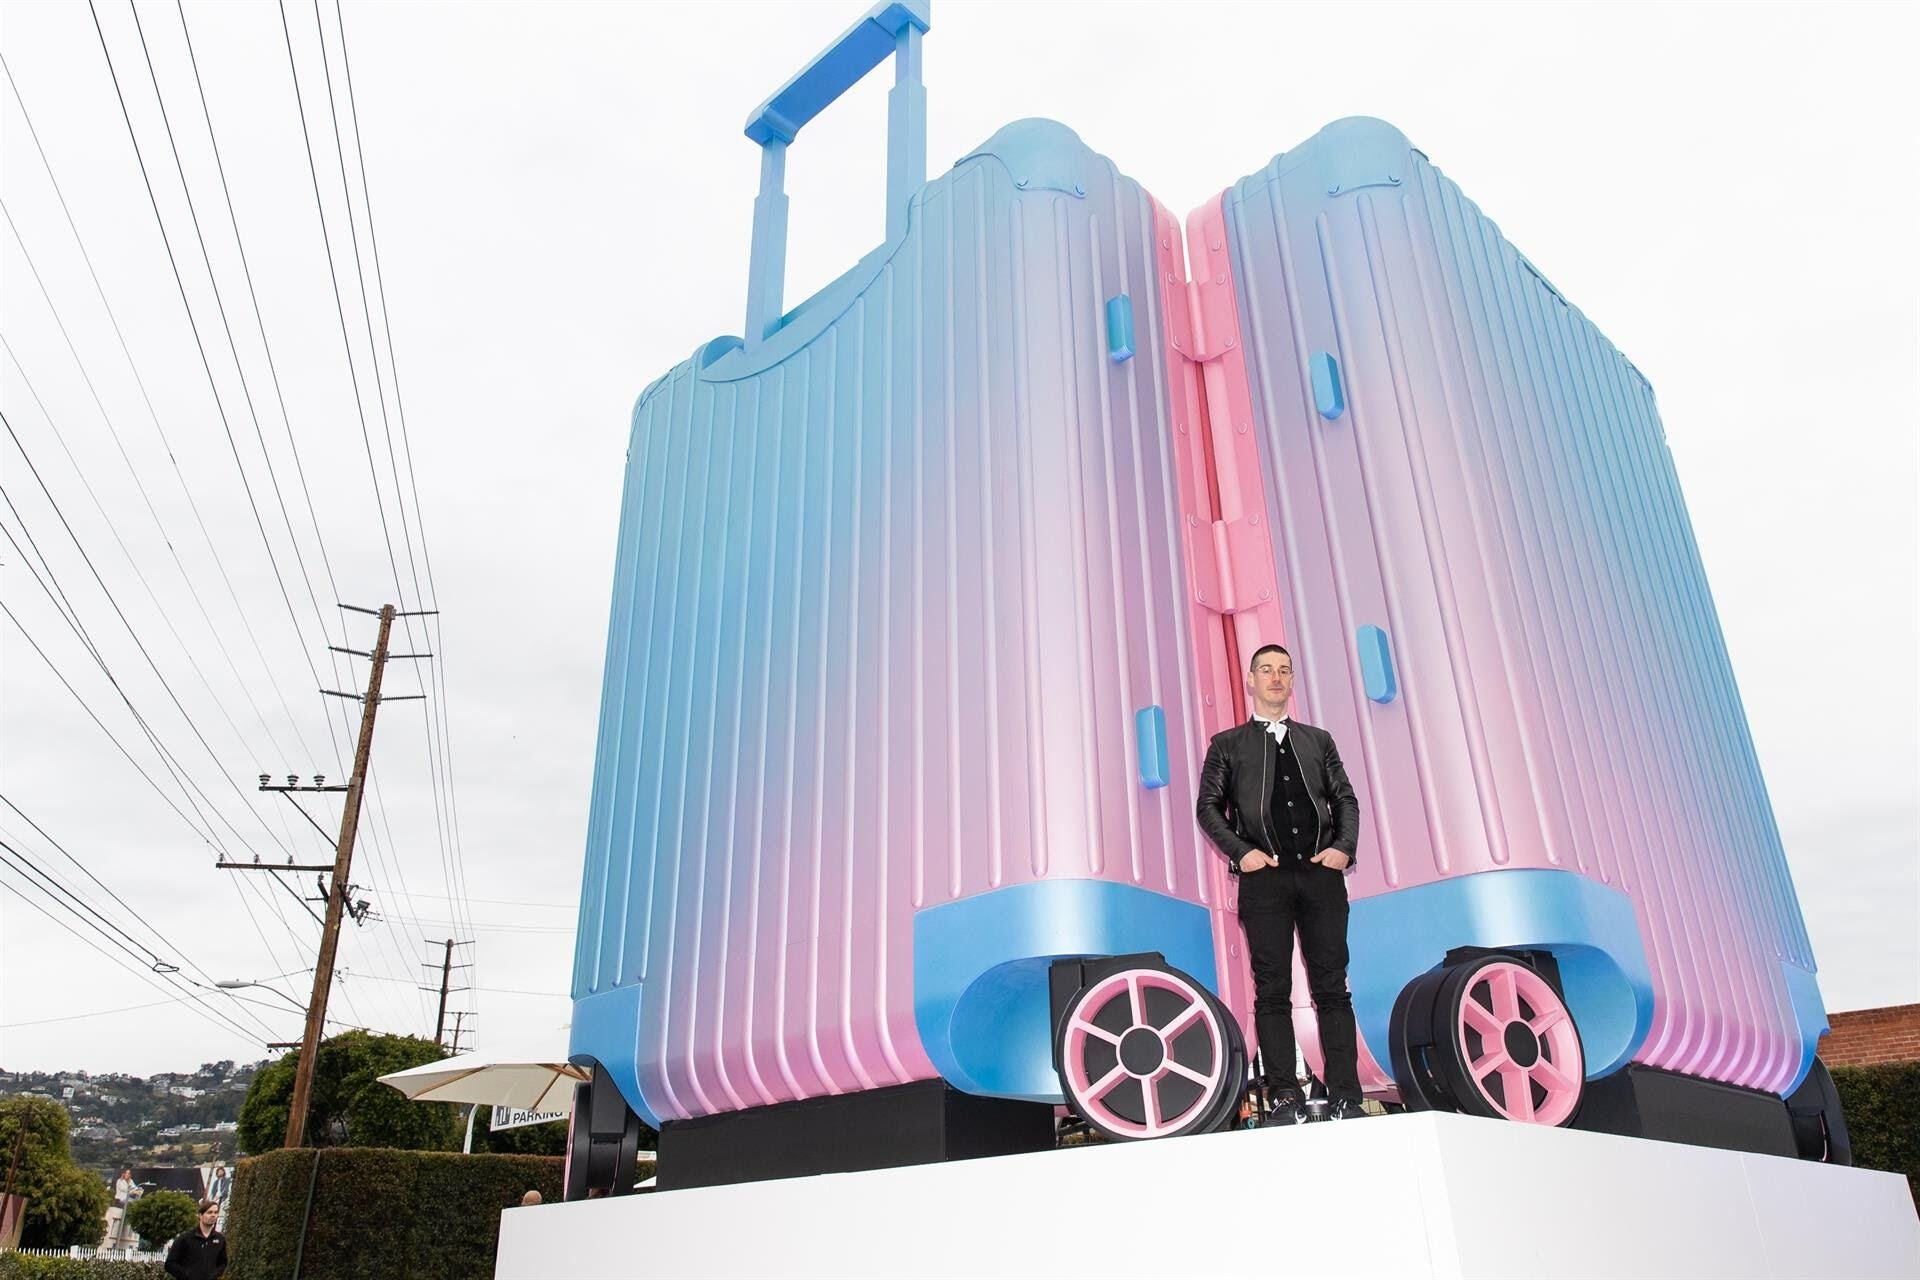 The giant Rimowa suitcase by artist Alex Israel | Source: Courtesy